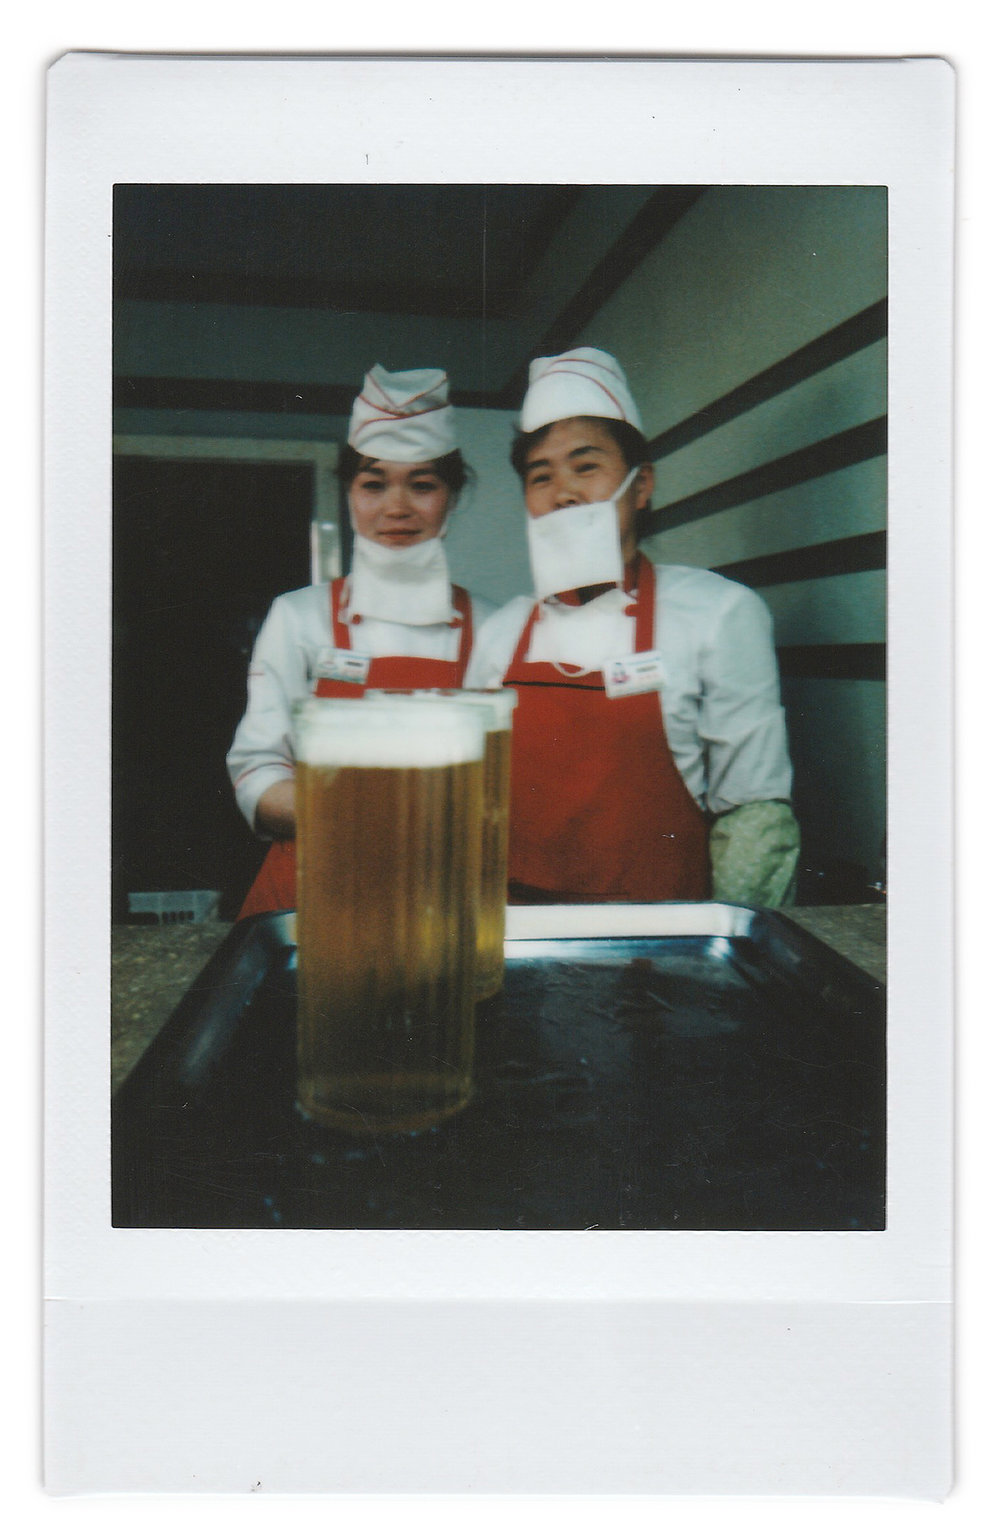 "In this May 7, 2016, photo made with an instant camera, beer servers Kim Yon Hui, 29, left, and Yang Pok Yong, 42, right, pose for a portrait while they wait to serve customers at the Taedonggang Beer shop, in Pyongyang, North Korea. Kim has been working as a server for over a year and likes her job because she likes ""seeing many people enjoy themselves under the deep care of the dear leader."" Kim's motto: ""To serve the people."" Yang is also ""pleased when people enjoy themselves at the beer shop"". Yang's motto: ""To please our leader by working hard for the people in my country.""  When asked what's important to them, North Koreans might talk about working hard, or doing well at sports, or having a big family, but leader Kim Jong Un is never far from the conversation. (AP Photo/Wong Maye-E)"